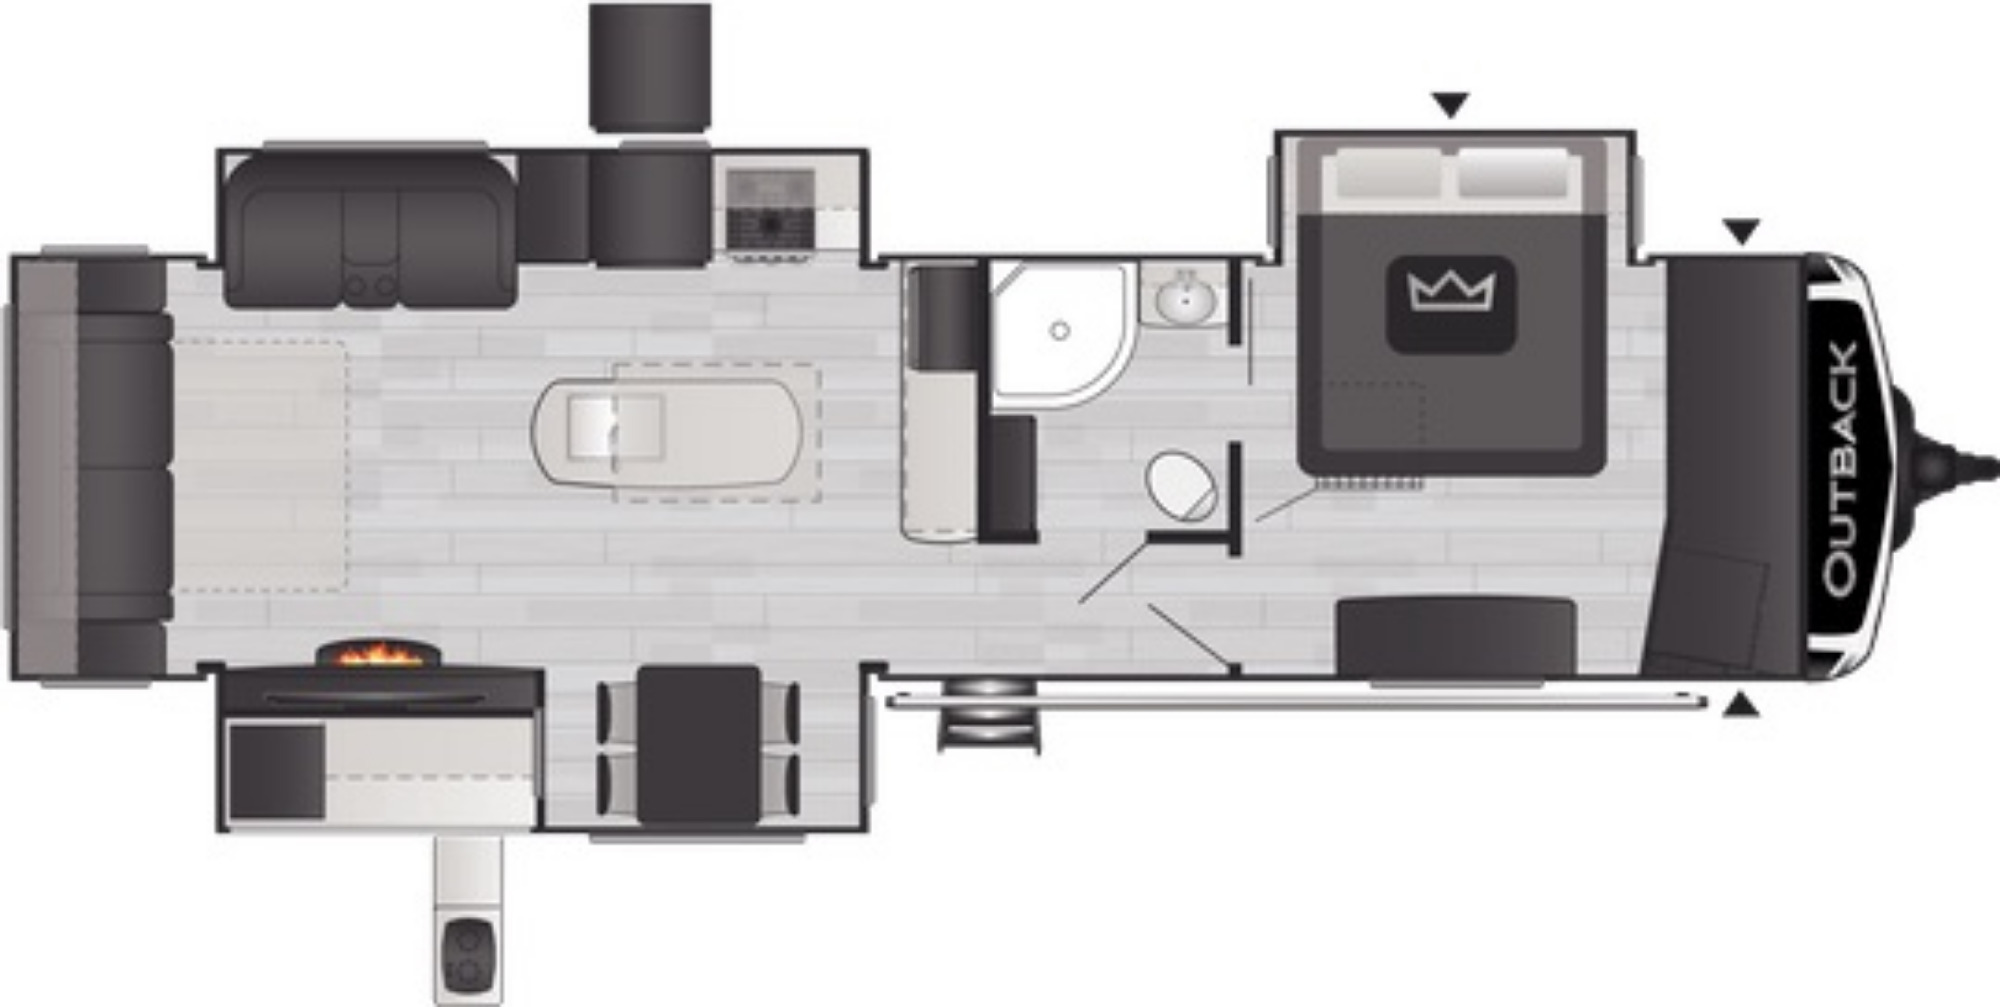 View Floor Plan for 2021 KEYSTONE OUTBACK 330RL